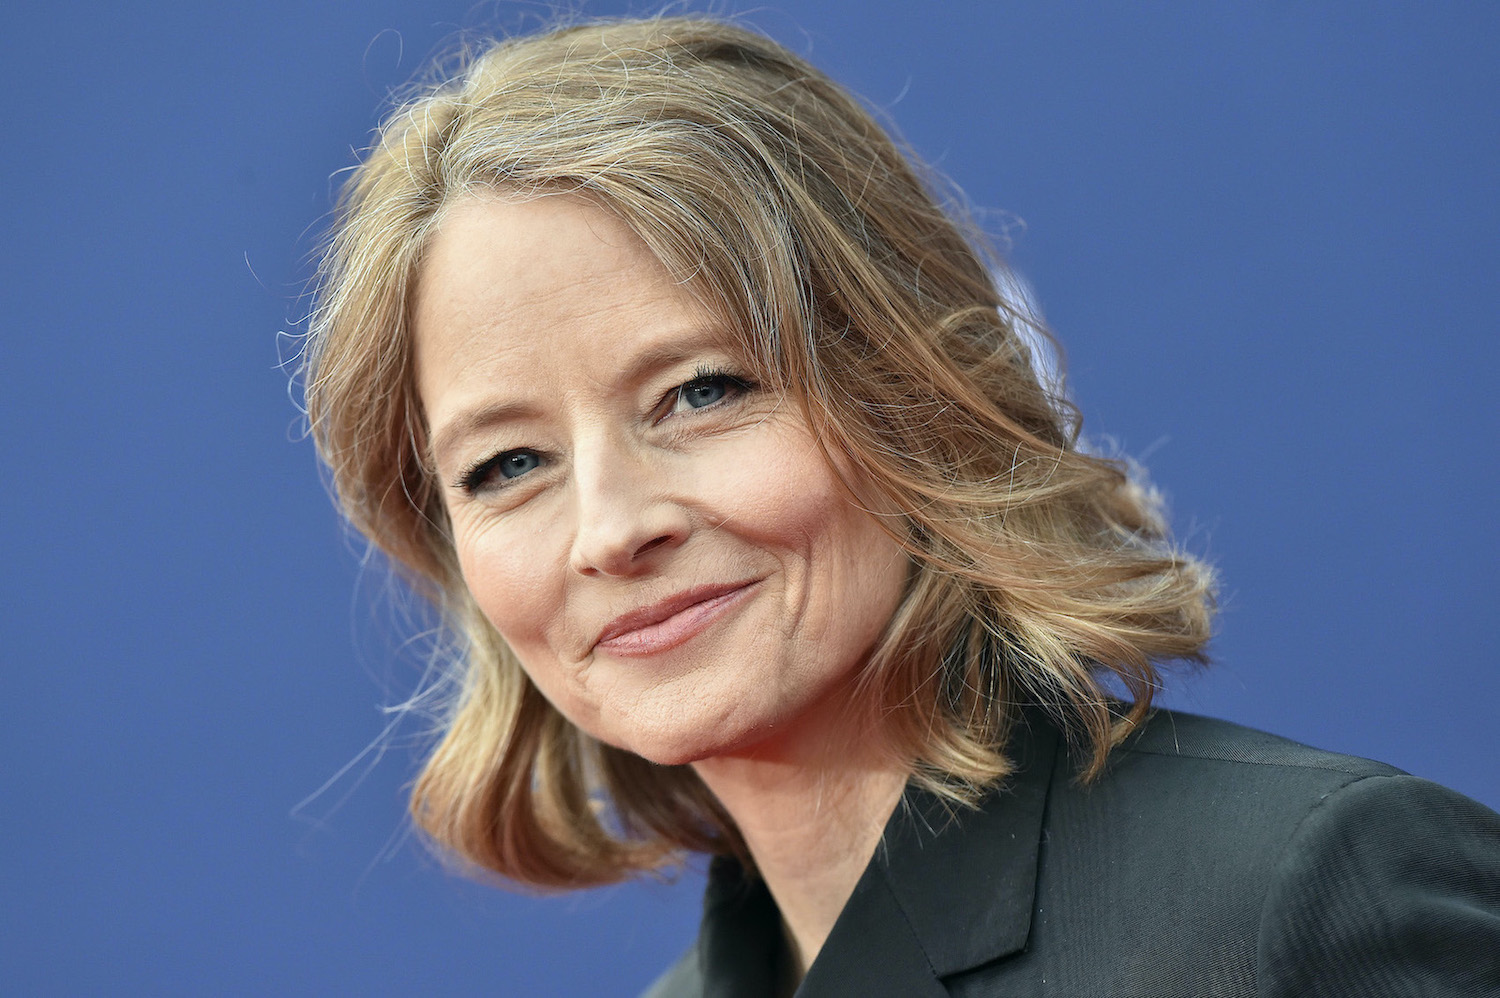 jodie foster - photo #31